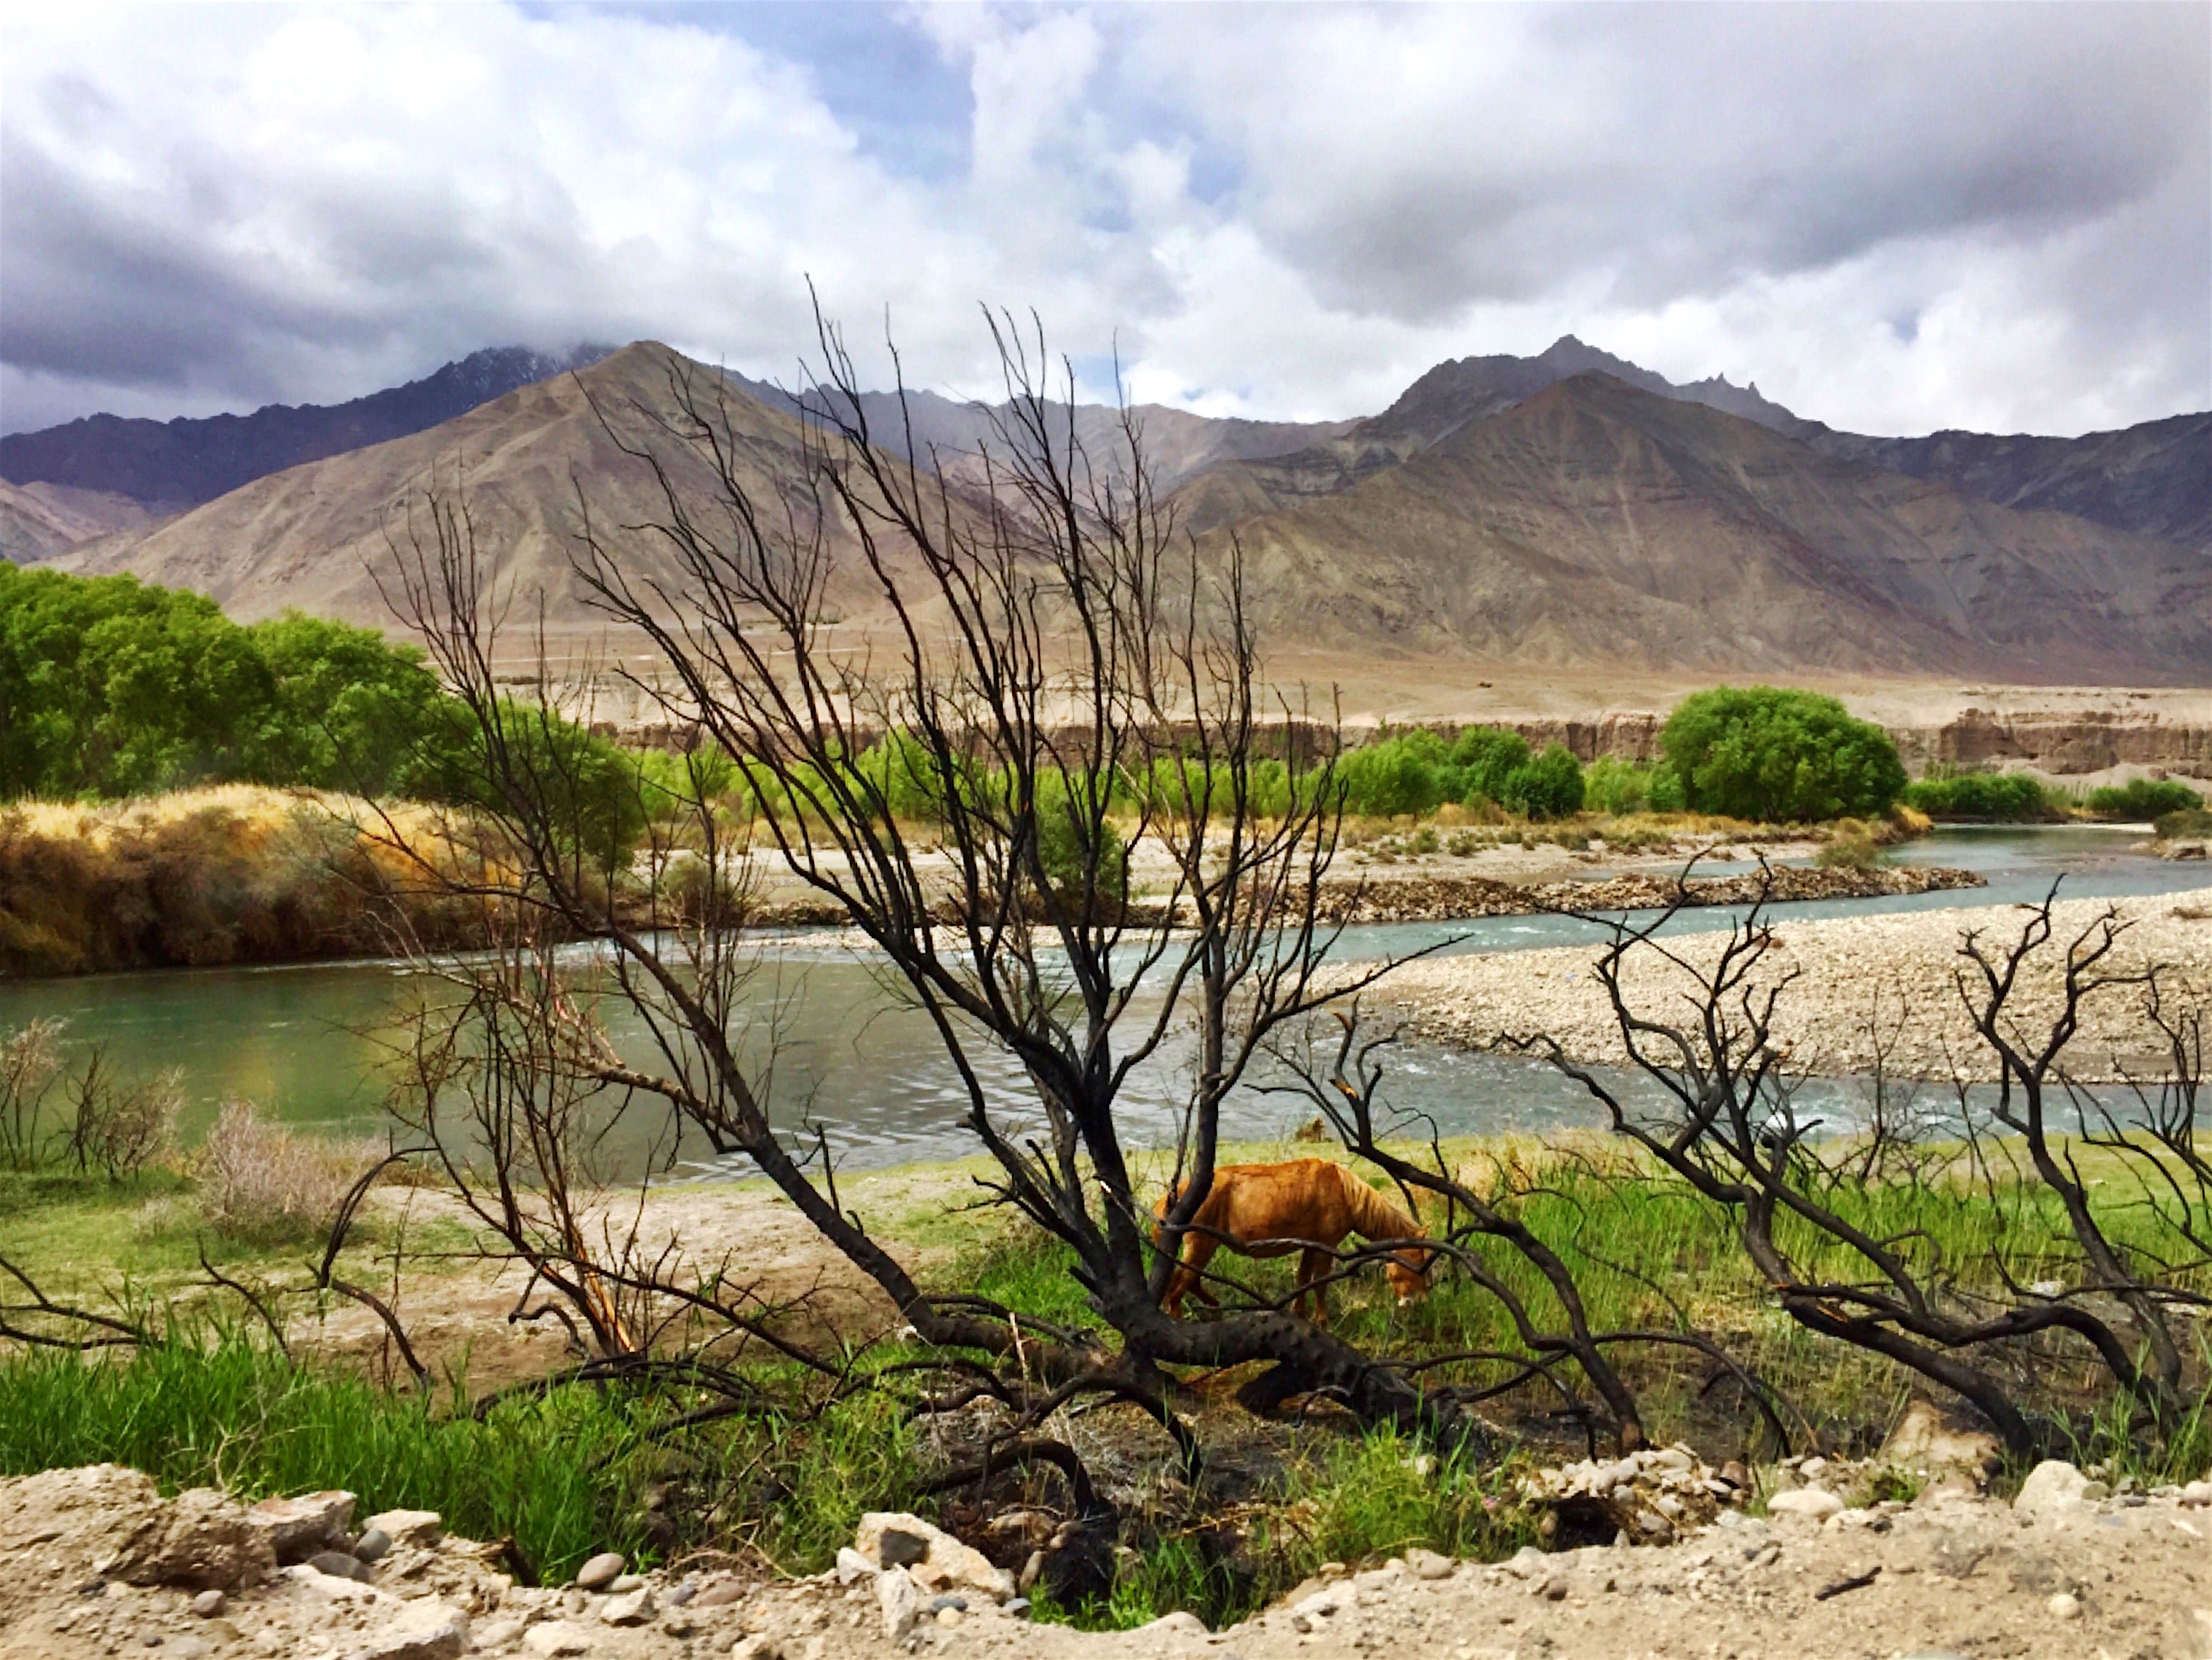 Scenes along the Indus